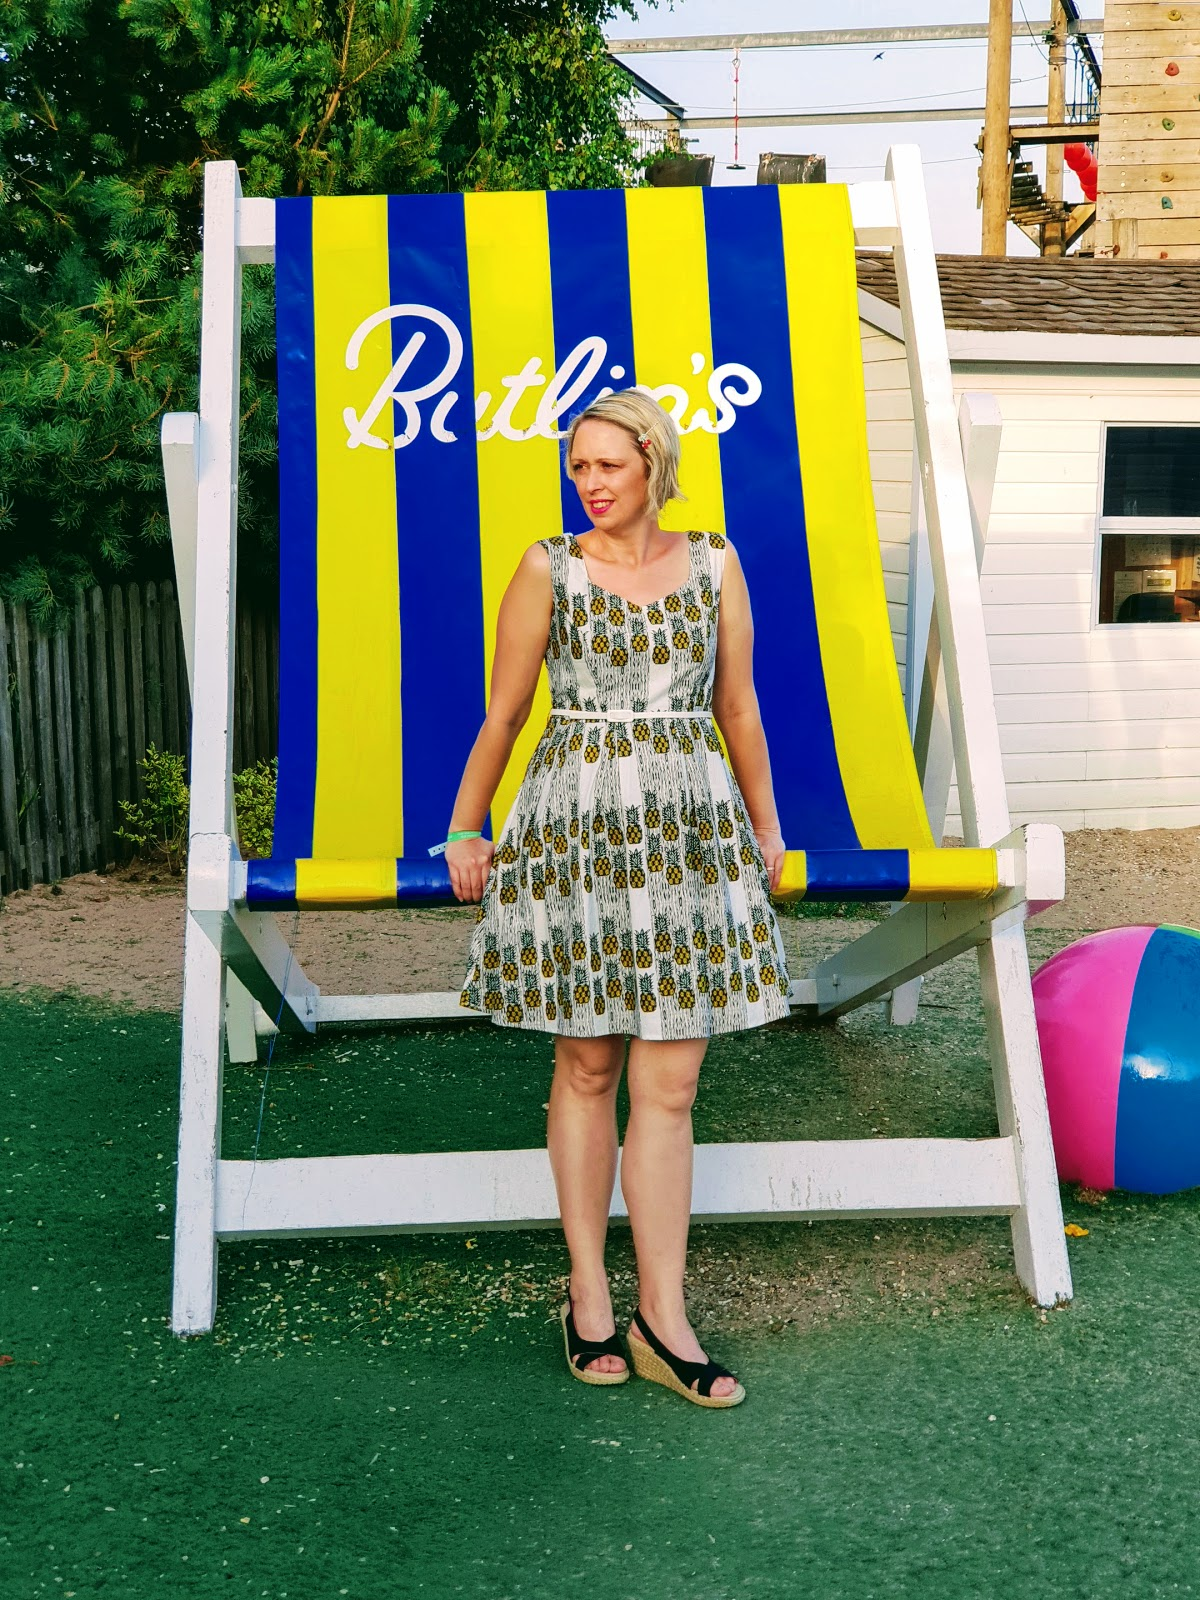 Pineapple Dress: Fun Prints Over 40 Style.